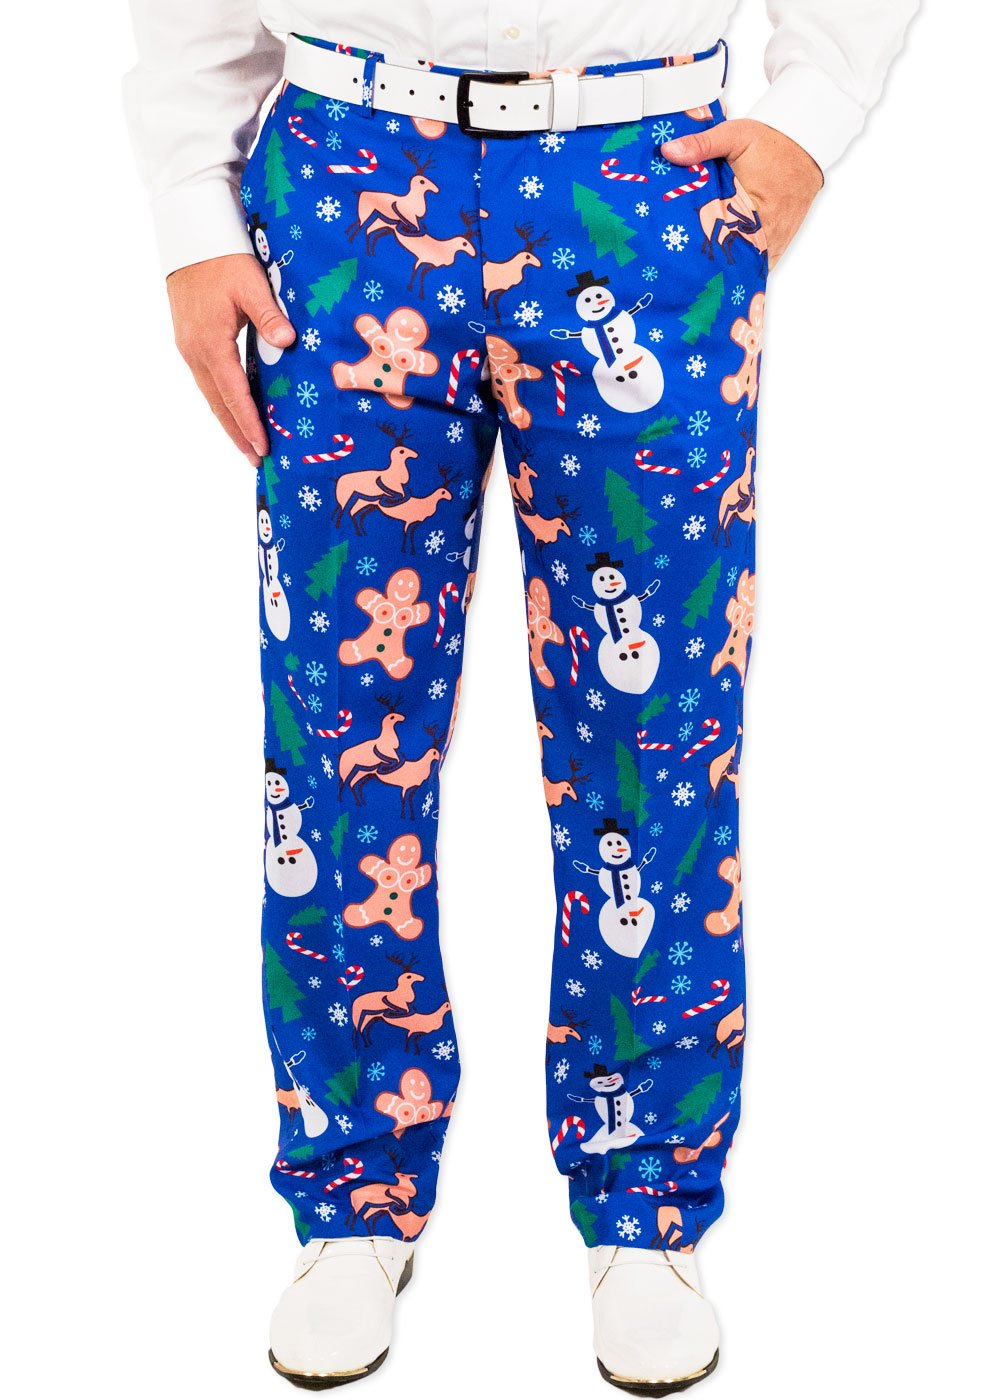 Festified Men's Holiday Naughty Christmas Suit Pants in Blue (30) by Festified